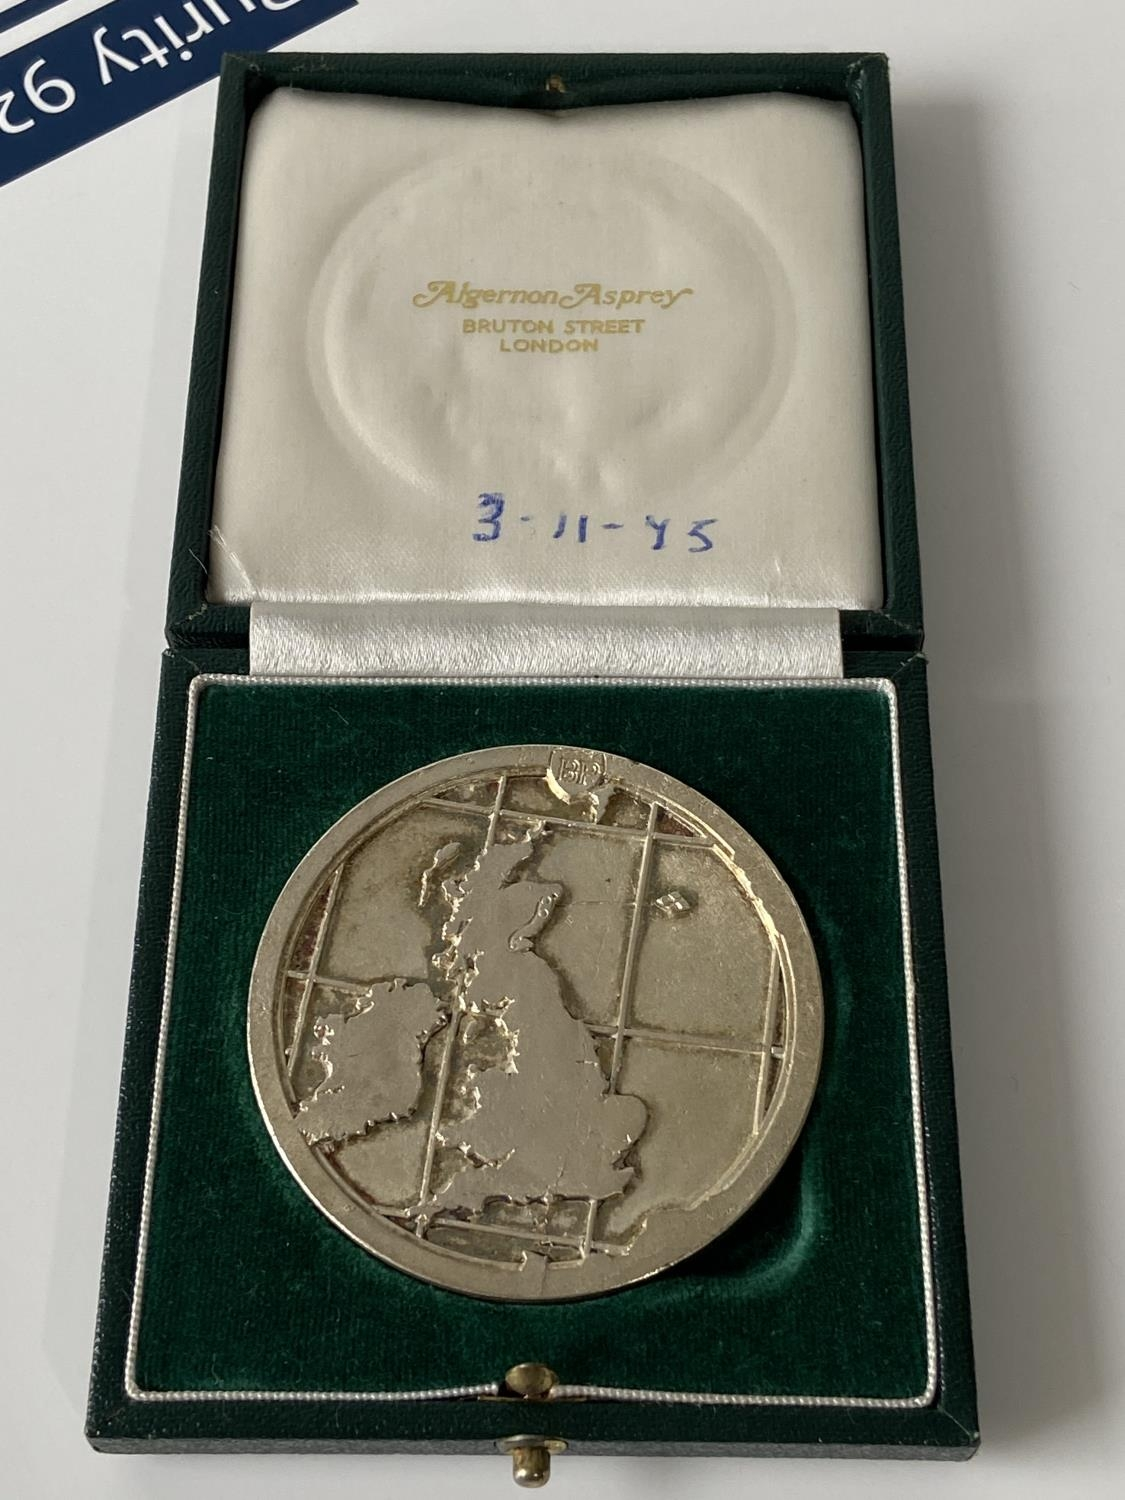 A 1975 commemorative medal for BP Forties Field oil field opening, comes with case, [diameter 6cm] - Image 2 of 6